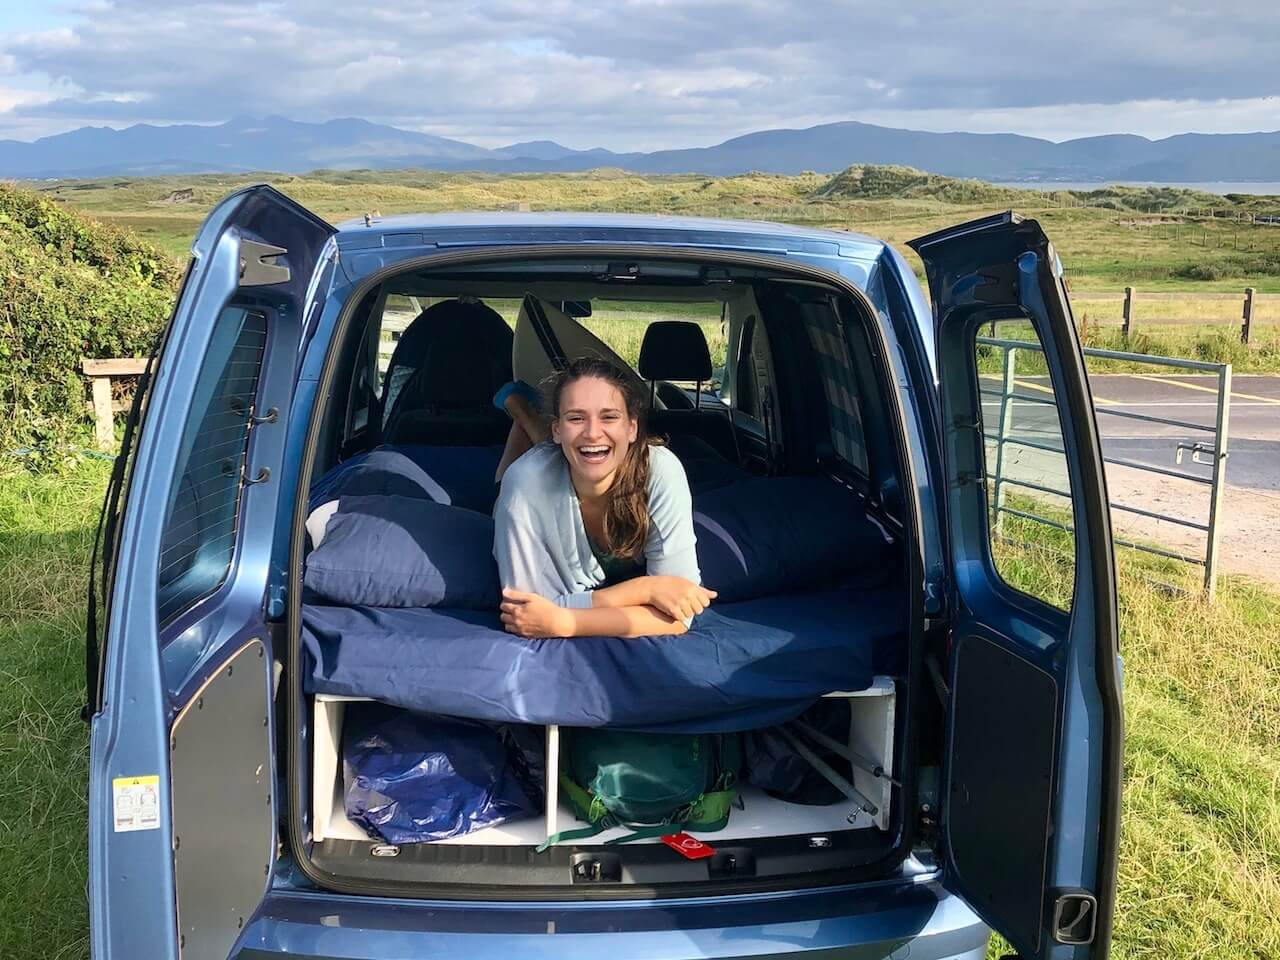 Nicola laying down on her stomach in a van with the back doors open. She's surrounded by fields and mountains and smiling at the camera.